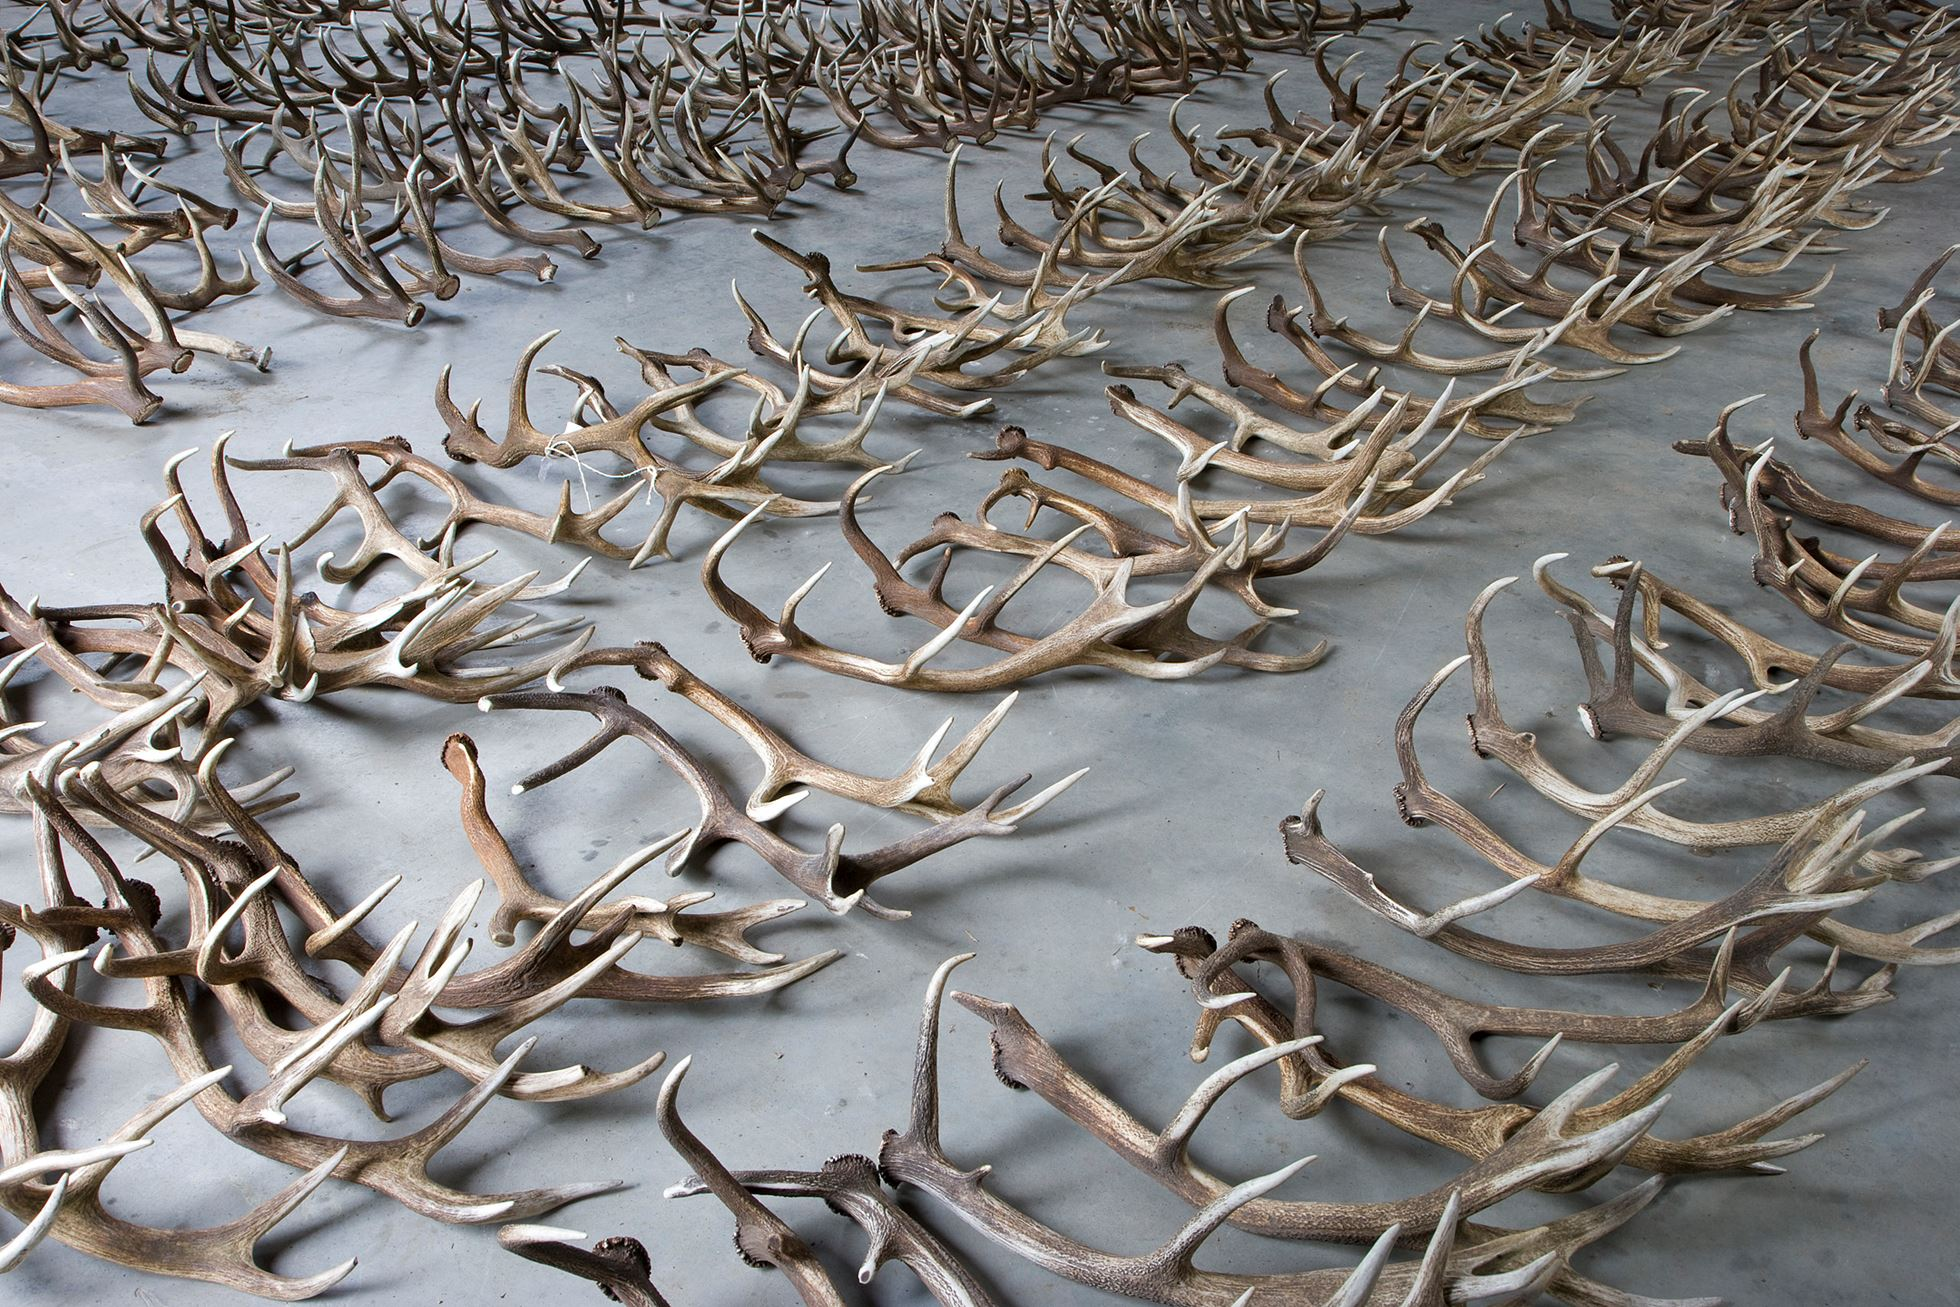 Red deer antlers laid out in prepartation for measuring and weighing as part of statisical analysis to assess the health of the red deer population. Oostvaardersplassen, Netherlands. June. Mission: Oostervaardersplassen, Netherlands, June 2009.